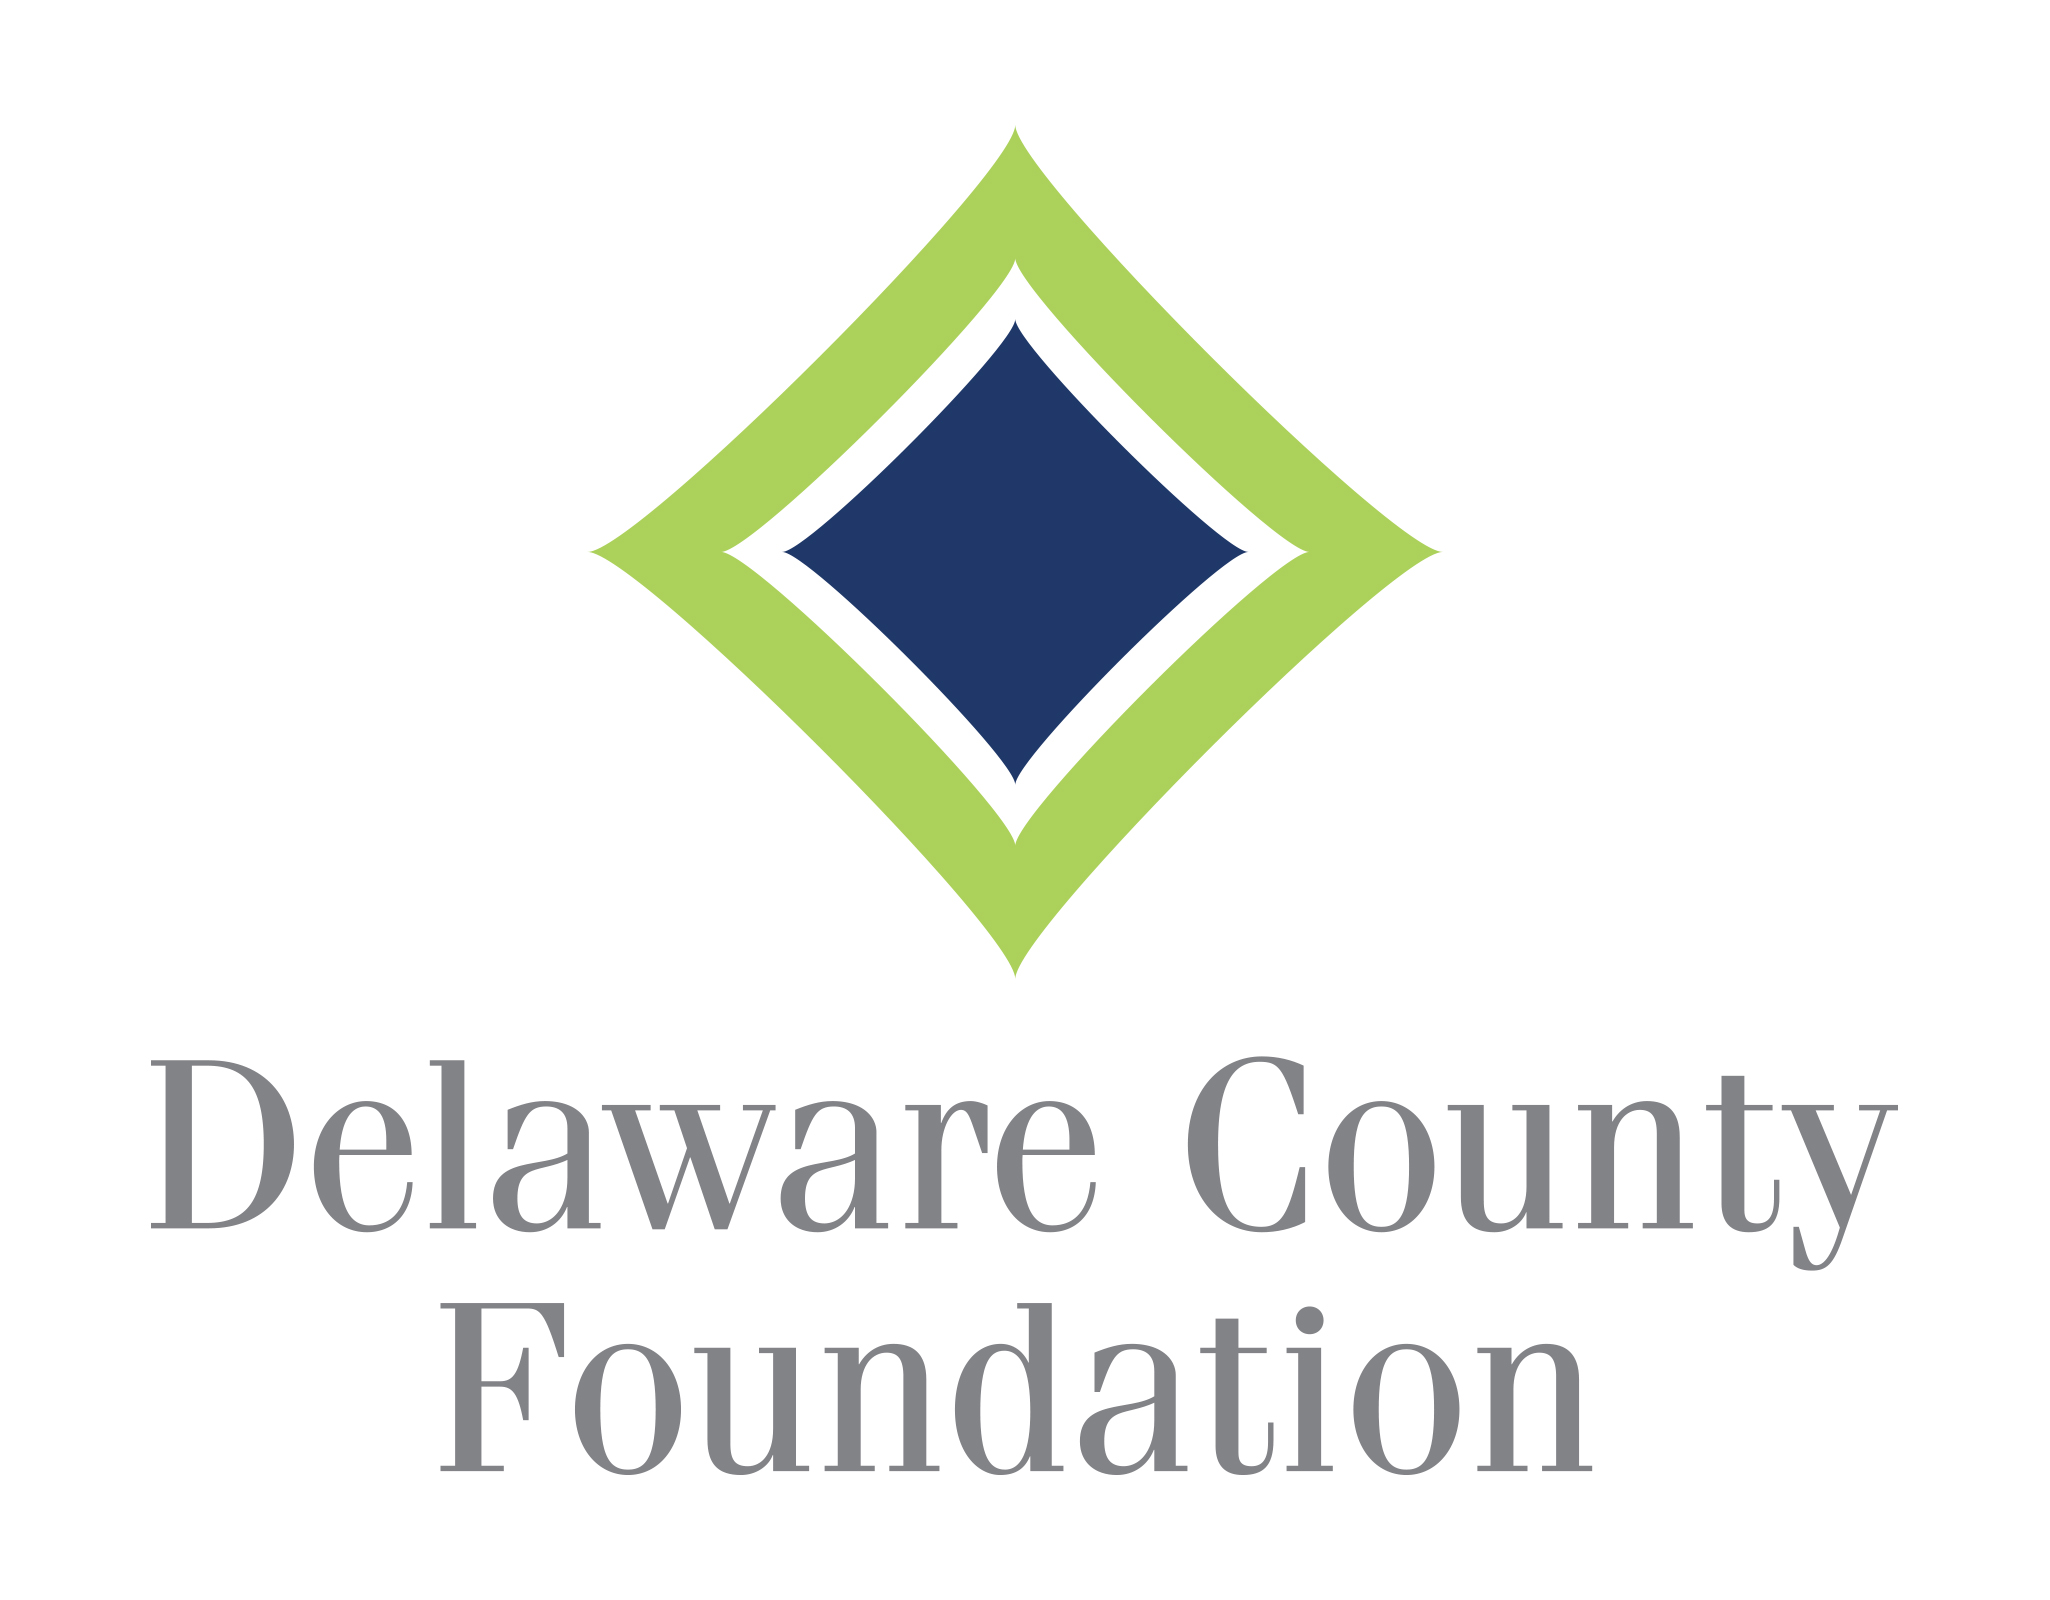 Delaware County Foundation